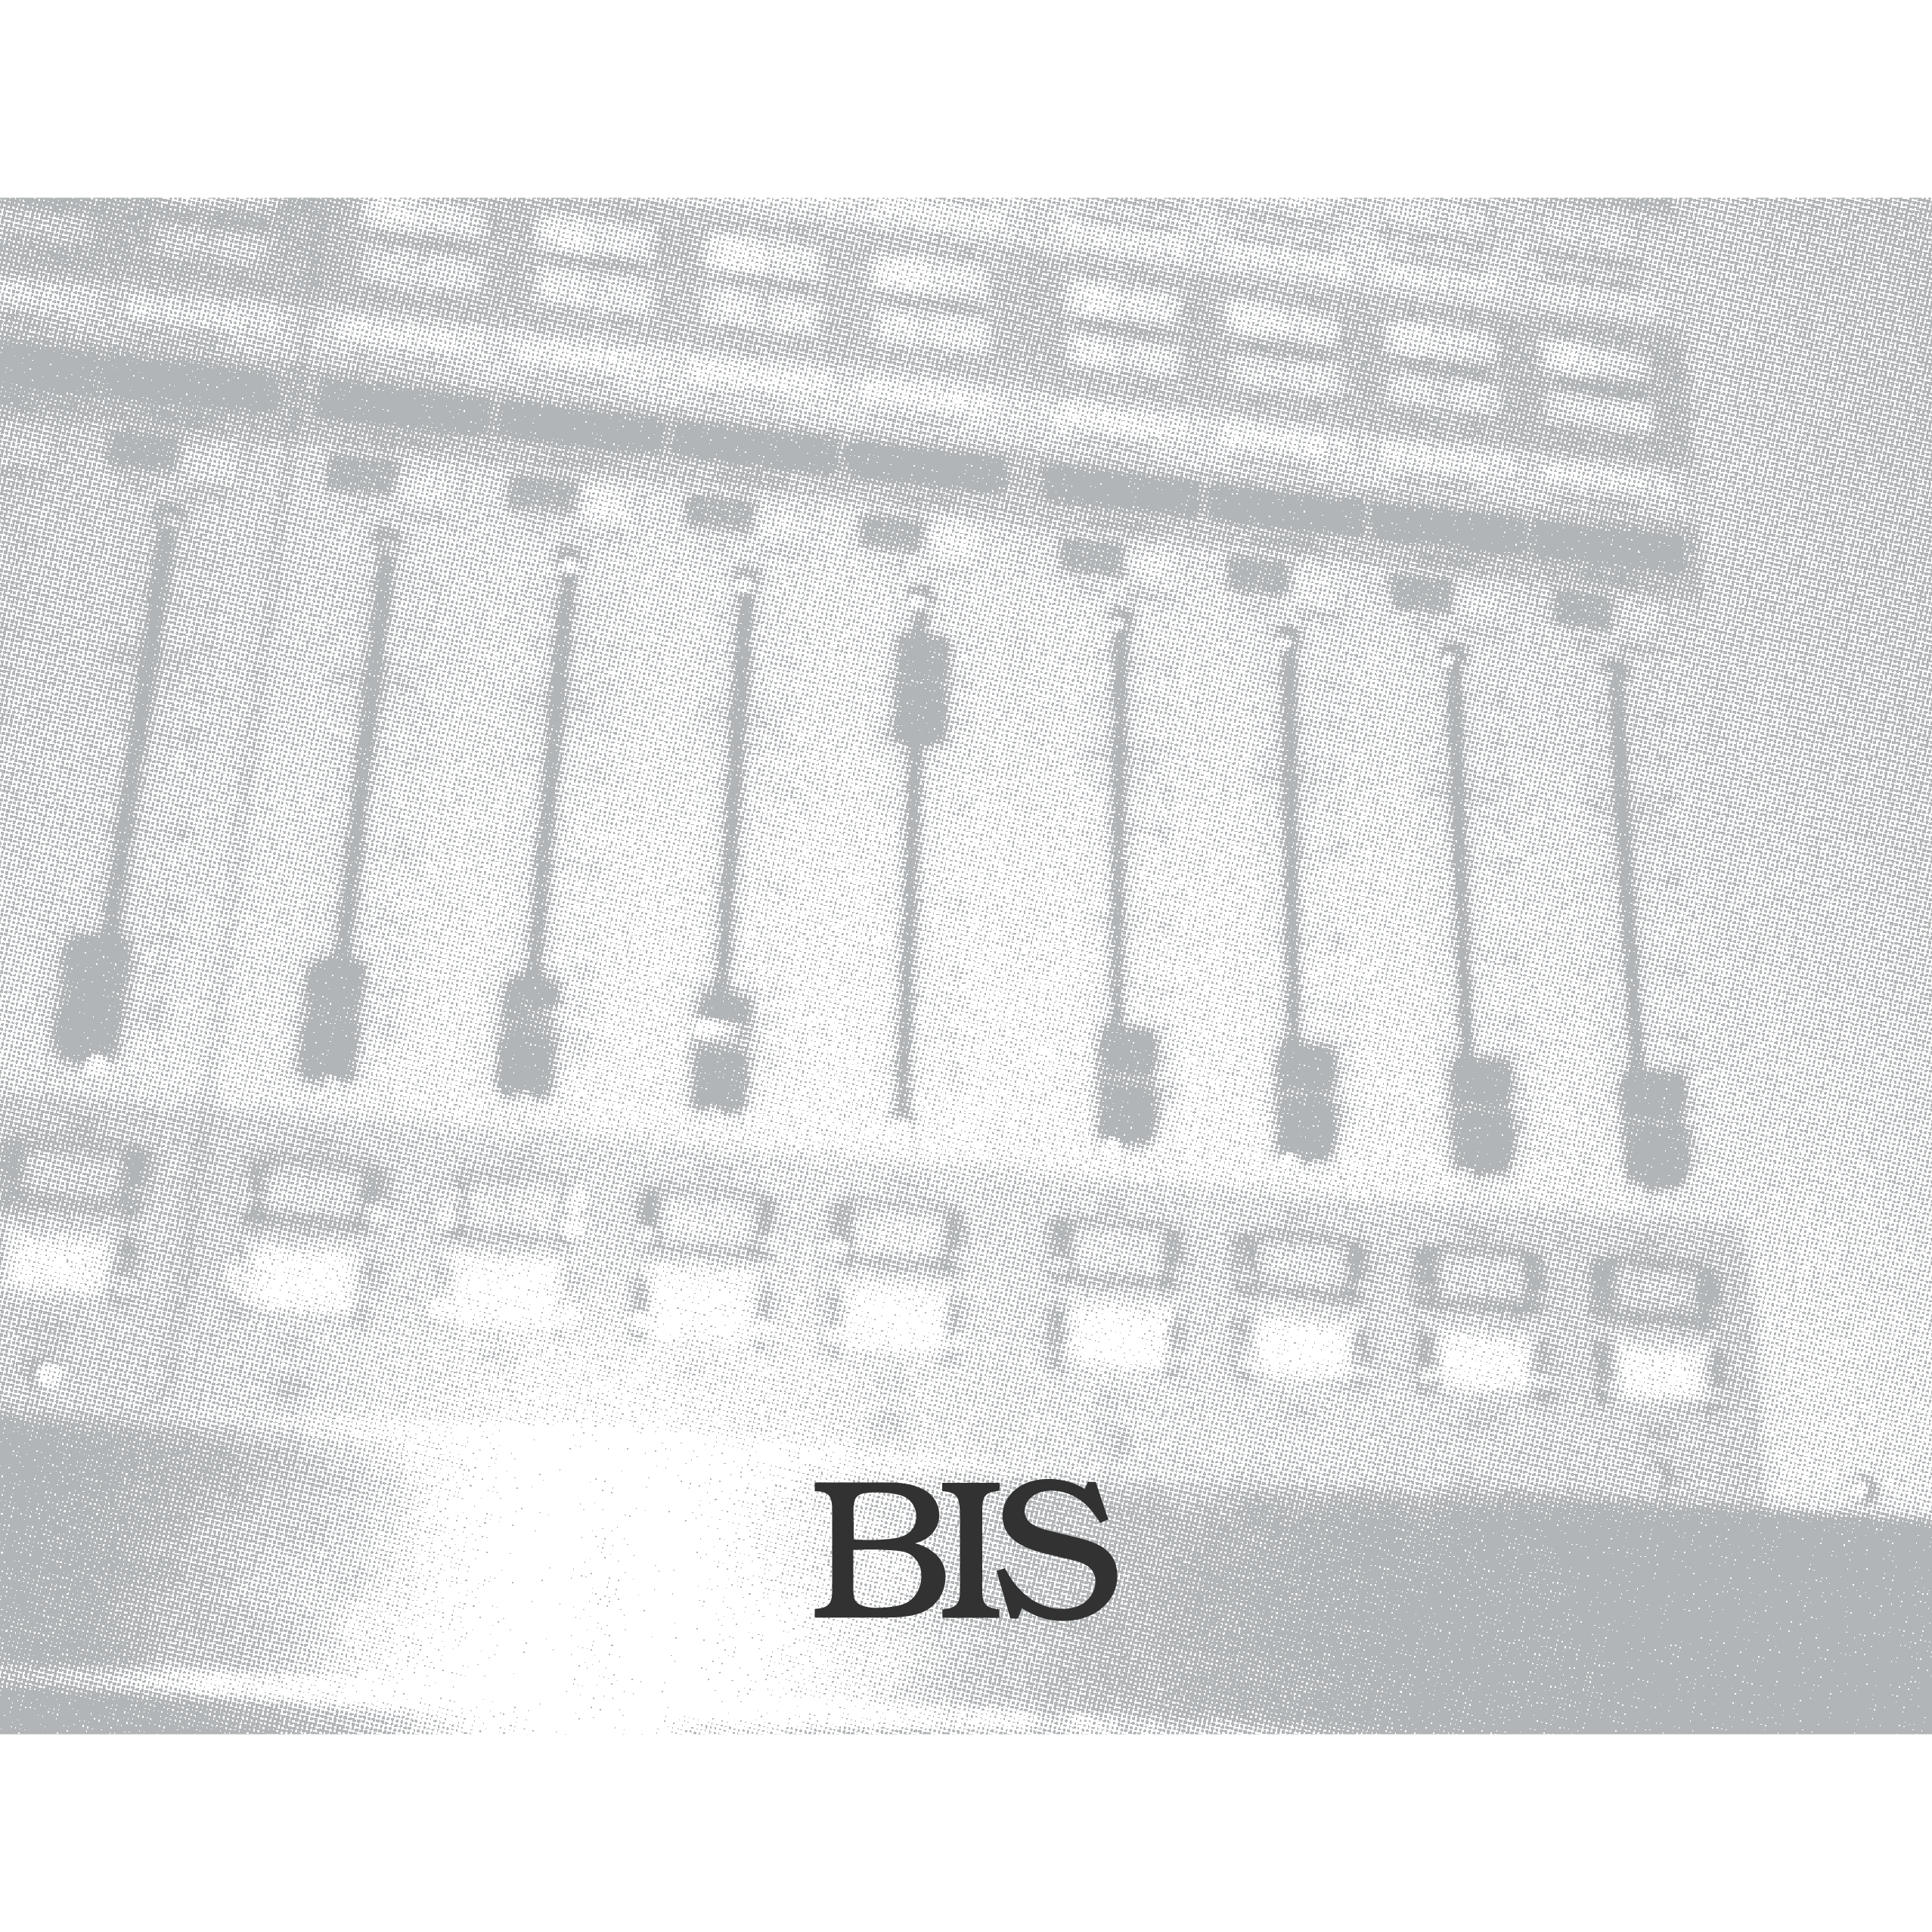 Beats In Space Radio Show #BIS Radio Show #1081 with Tim Sweeney Part 1